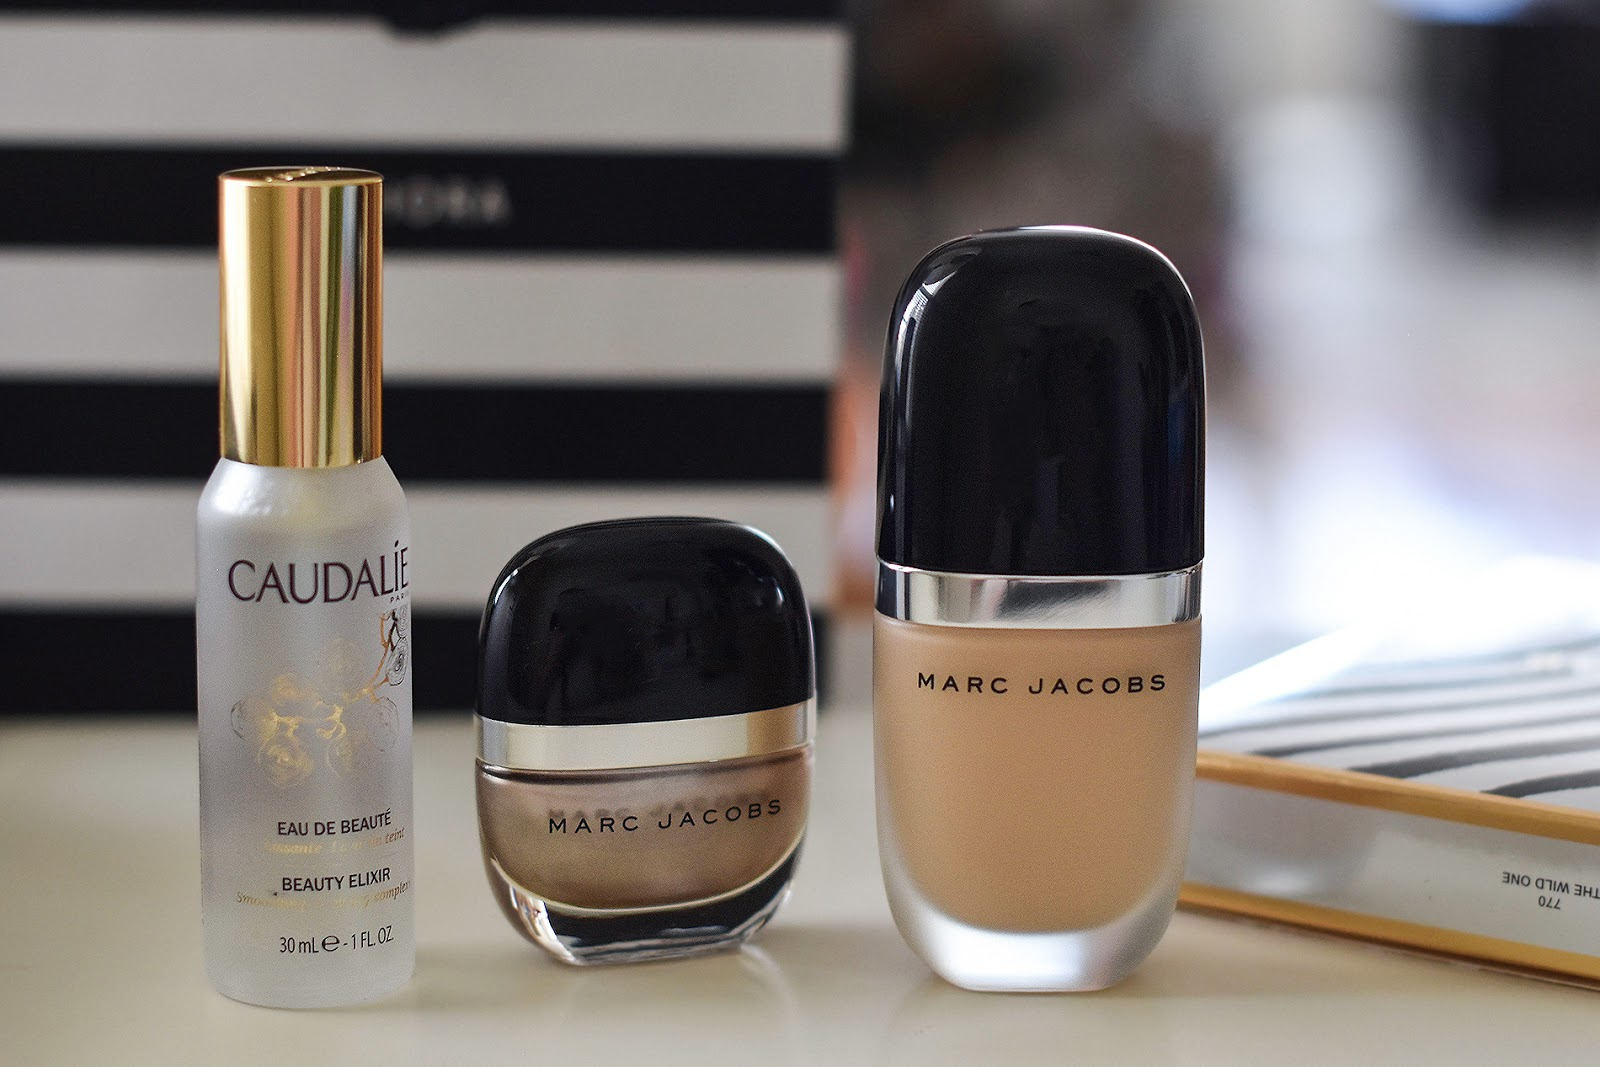 Marc Jacobs Genius Gel Super Charged oil-free foundation, Marc Jacobs nail polish and Caudalie Beauty Elixir setting spray